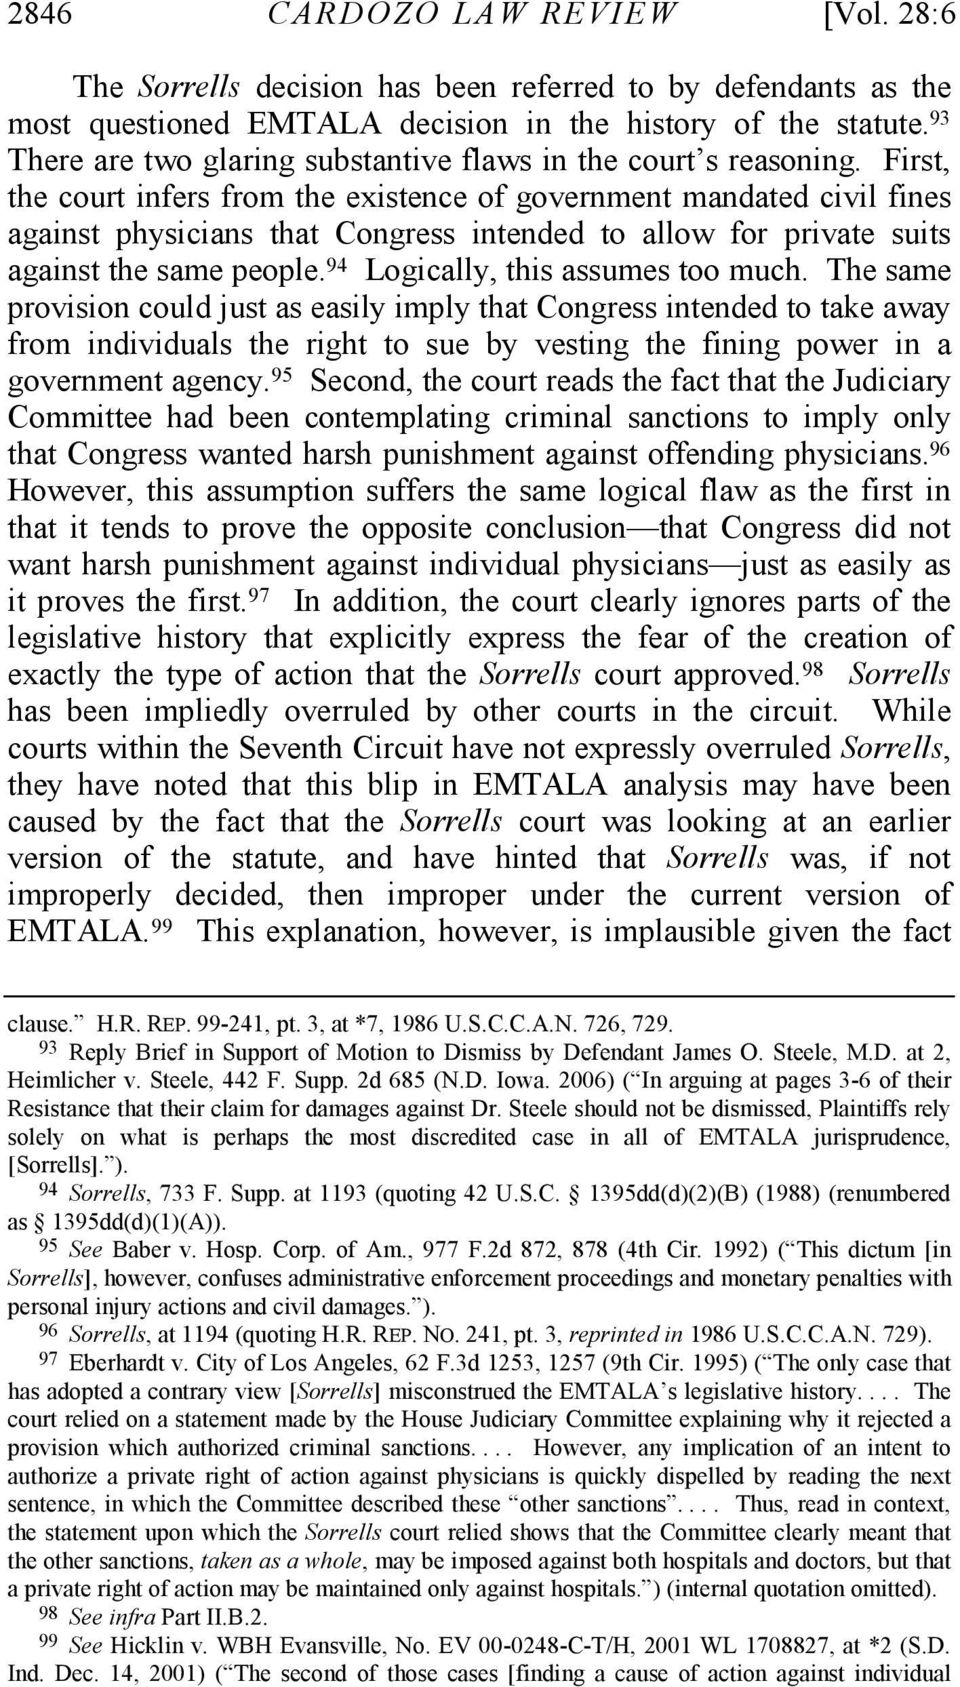 First, the court infers from the existence of government mandated civil fines against physicians that Congress intended to allow for private suits against the same people.